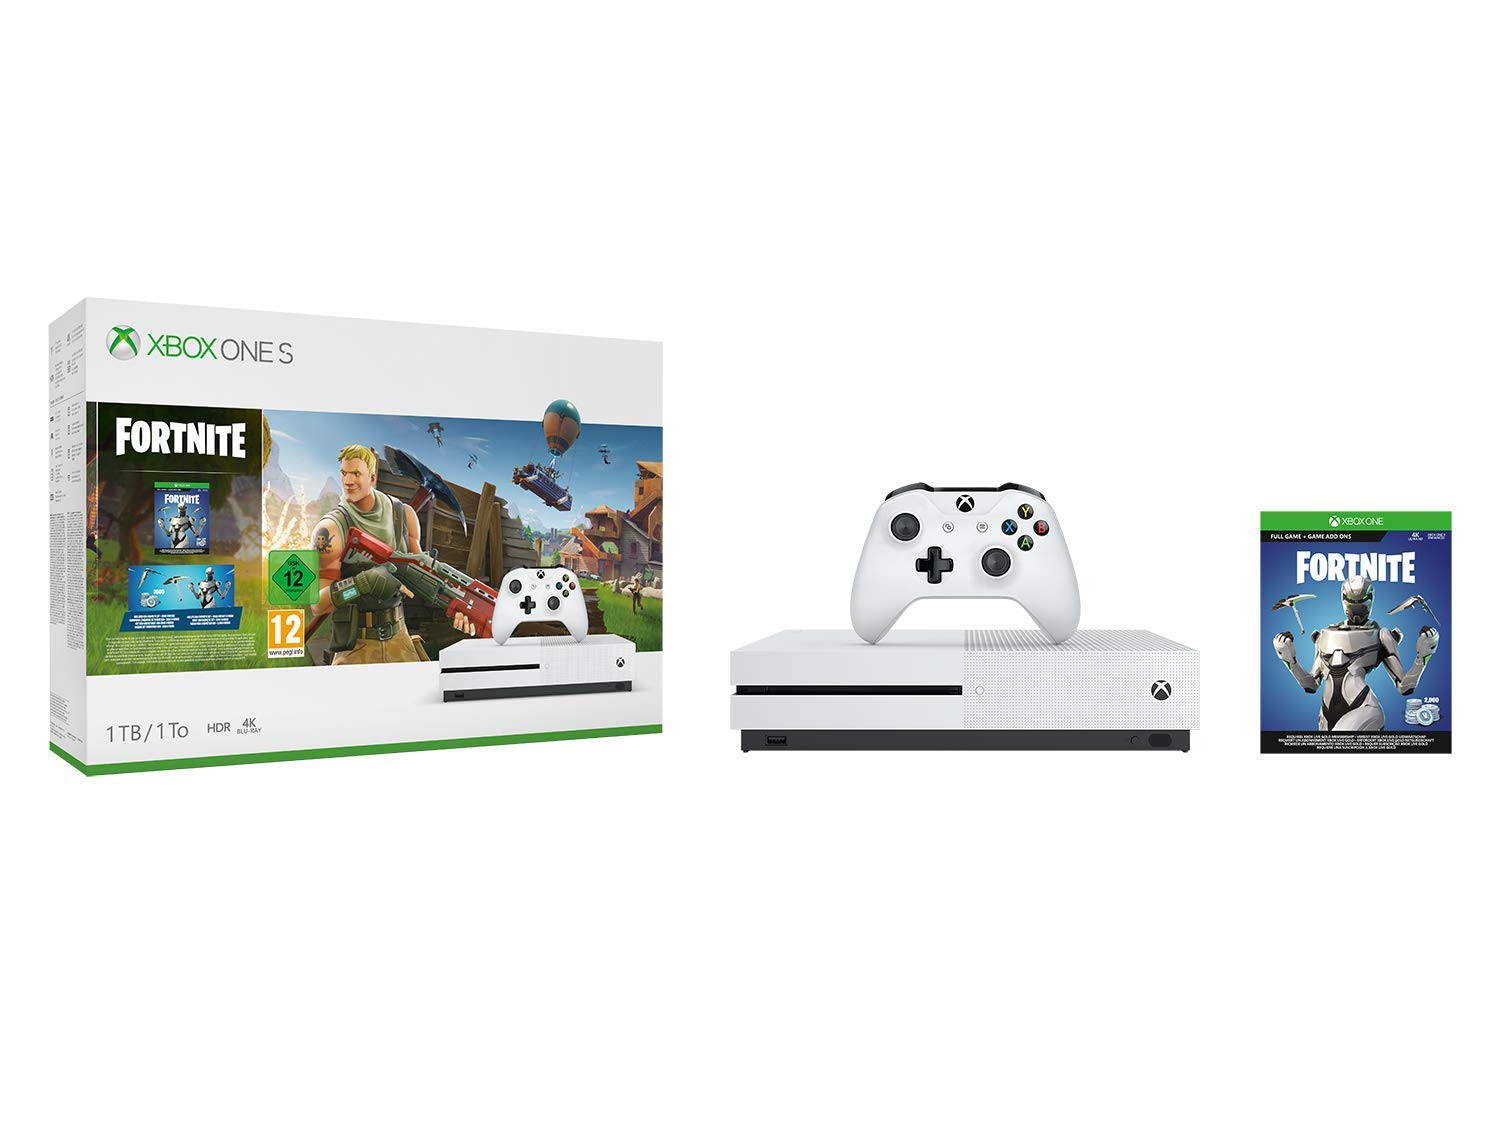 Xbox One S 1TB console Fortnite bundle